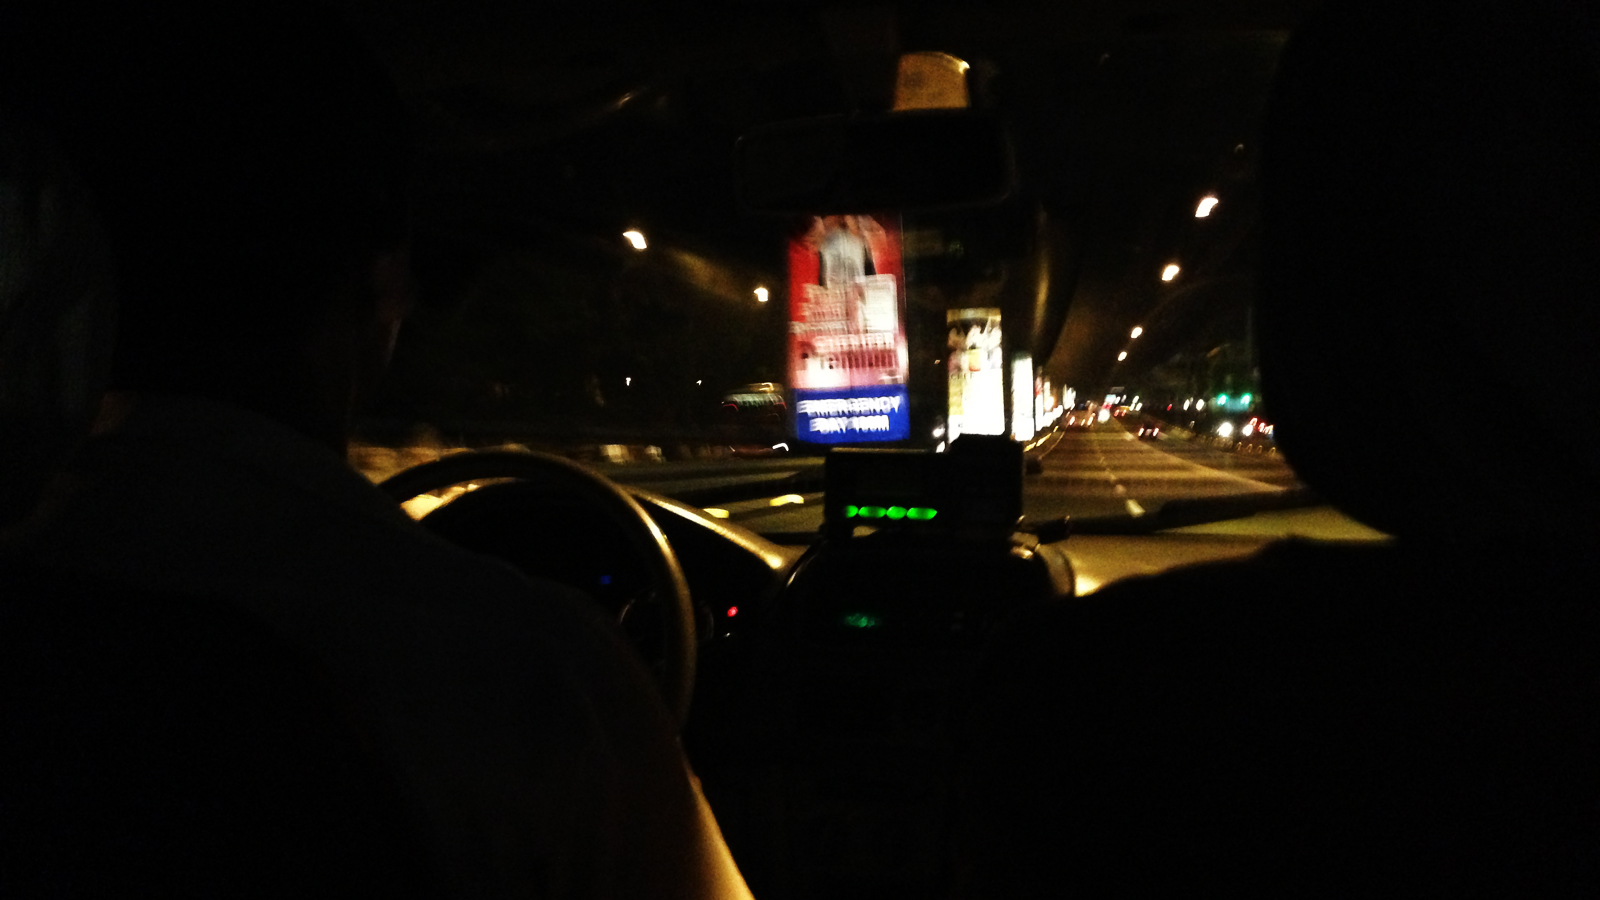 I was on a taxi last night. Note the meter is not turned on.